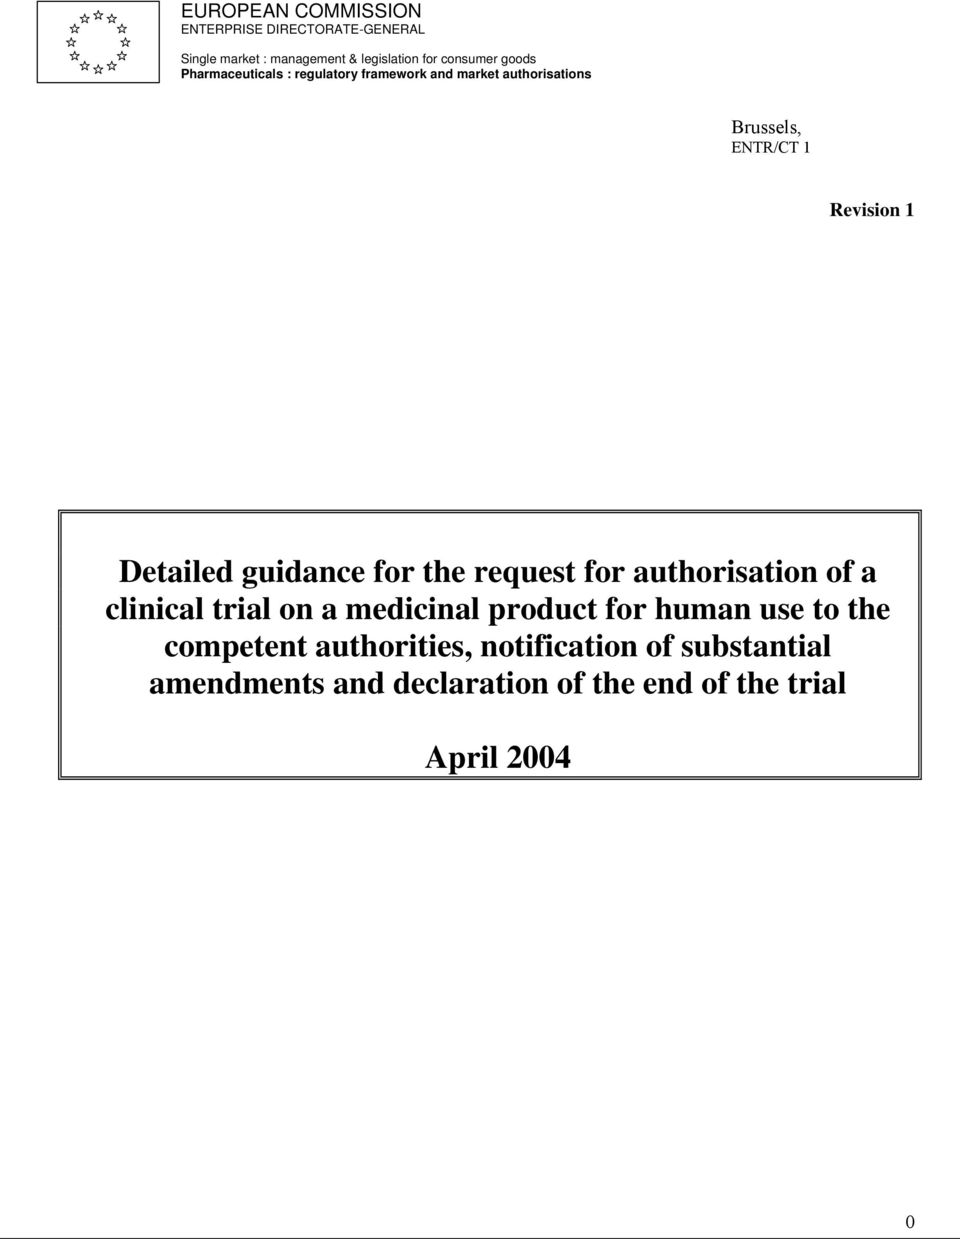 Detailed guidance for the request for authorisation of a clinical trial on a medicinal product for human use